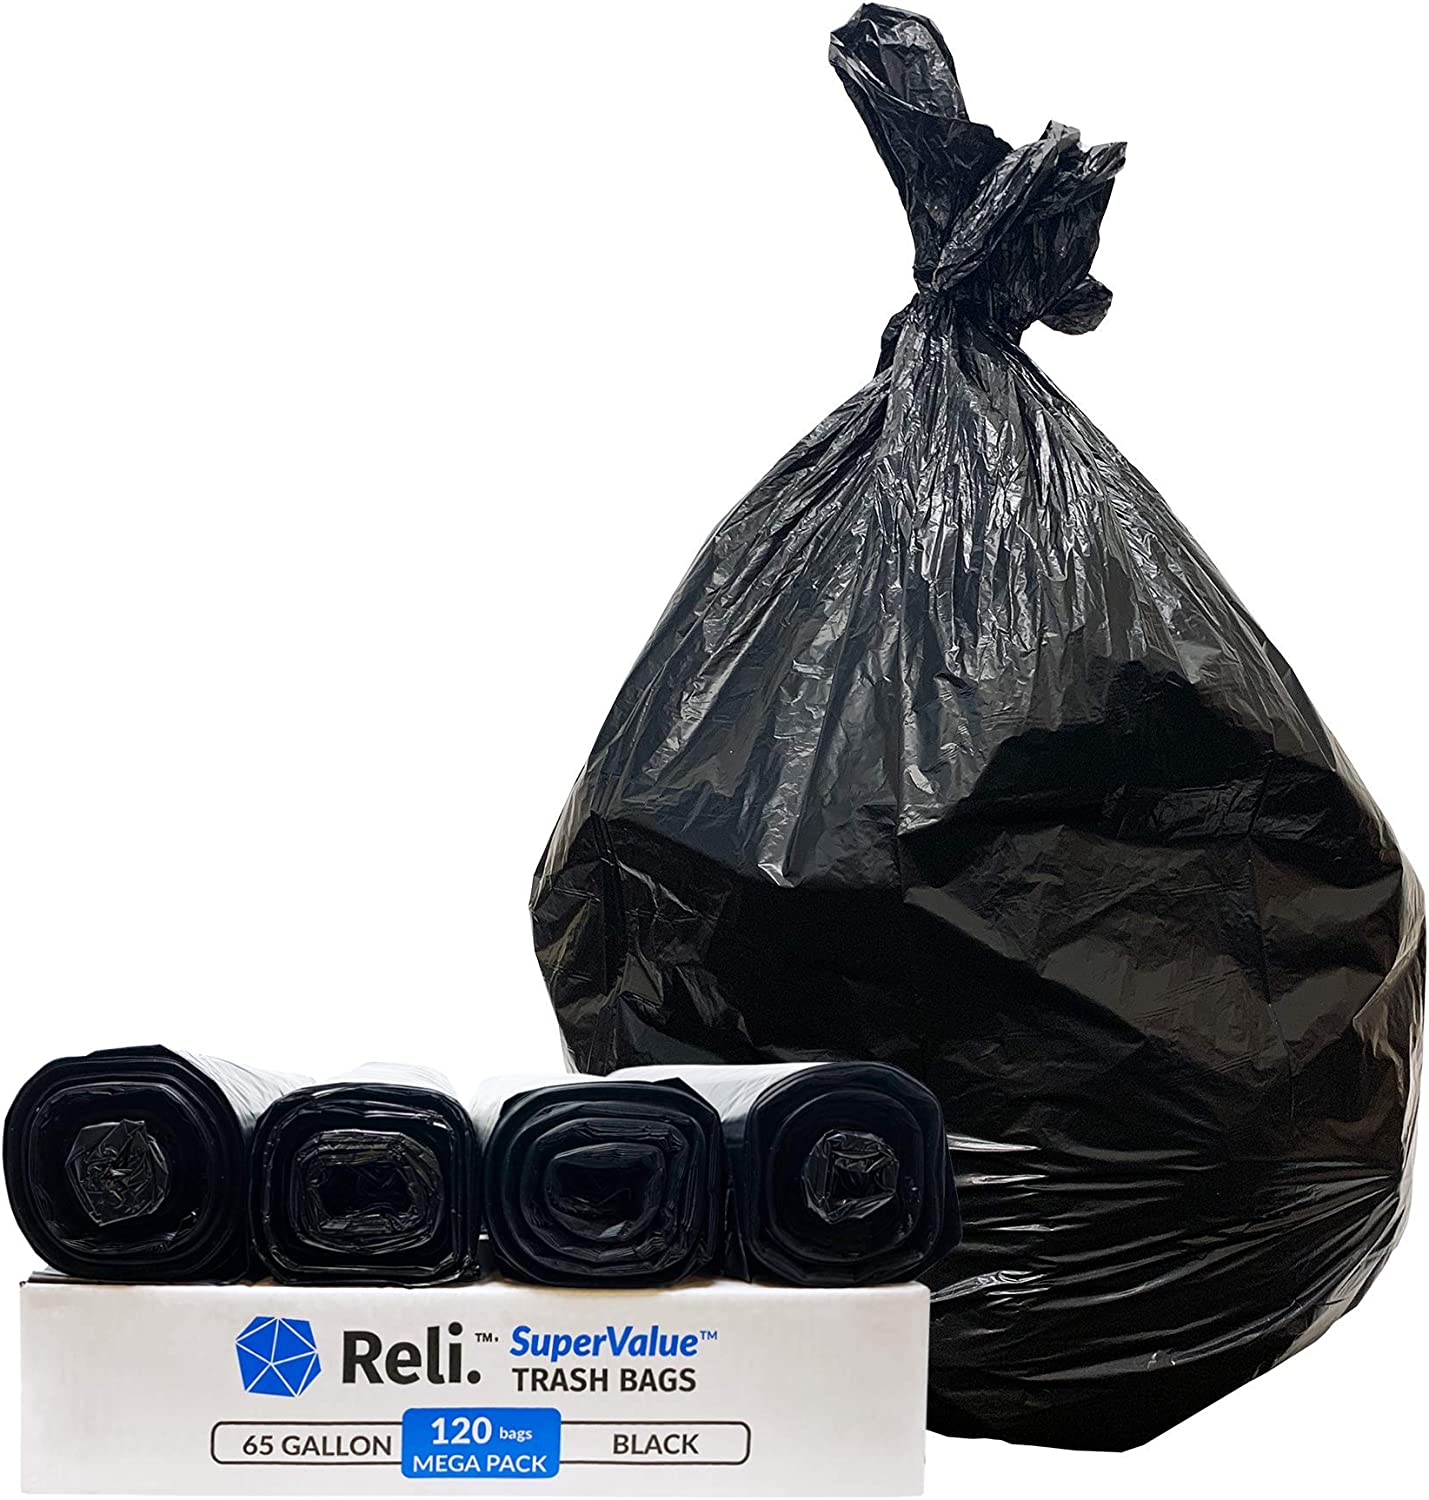 Made in USA Details about  /Reli Clear 120 Count, Bulk SuperValue 65 Gallon Trash Bags